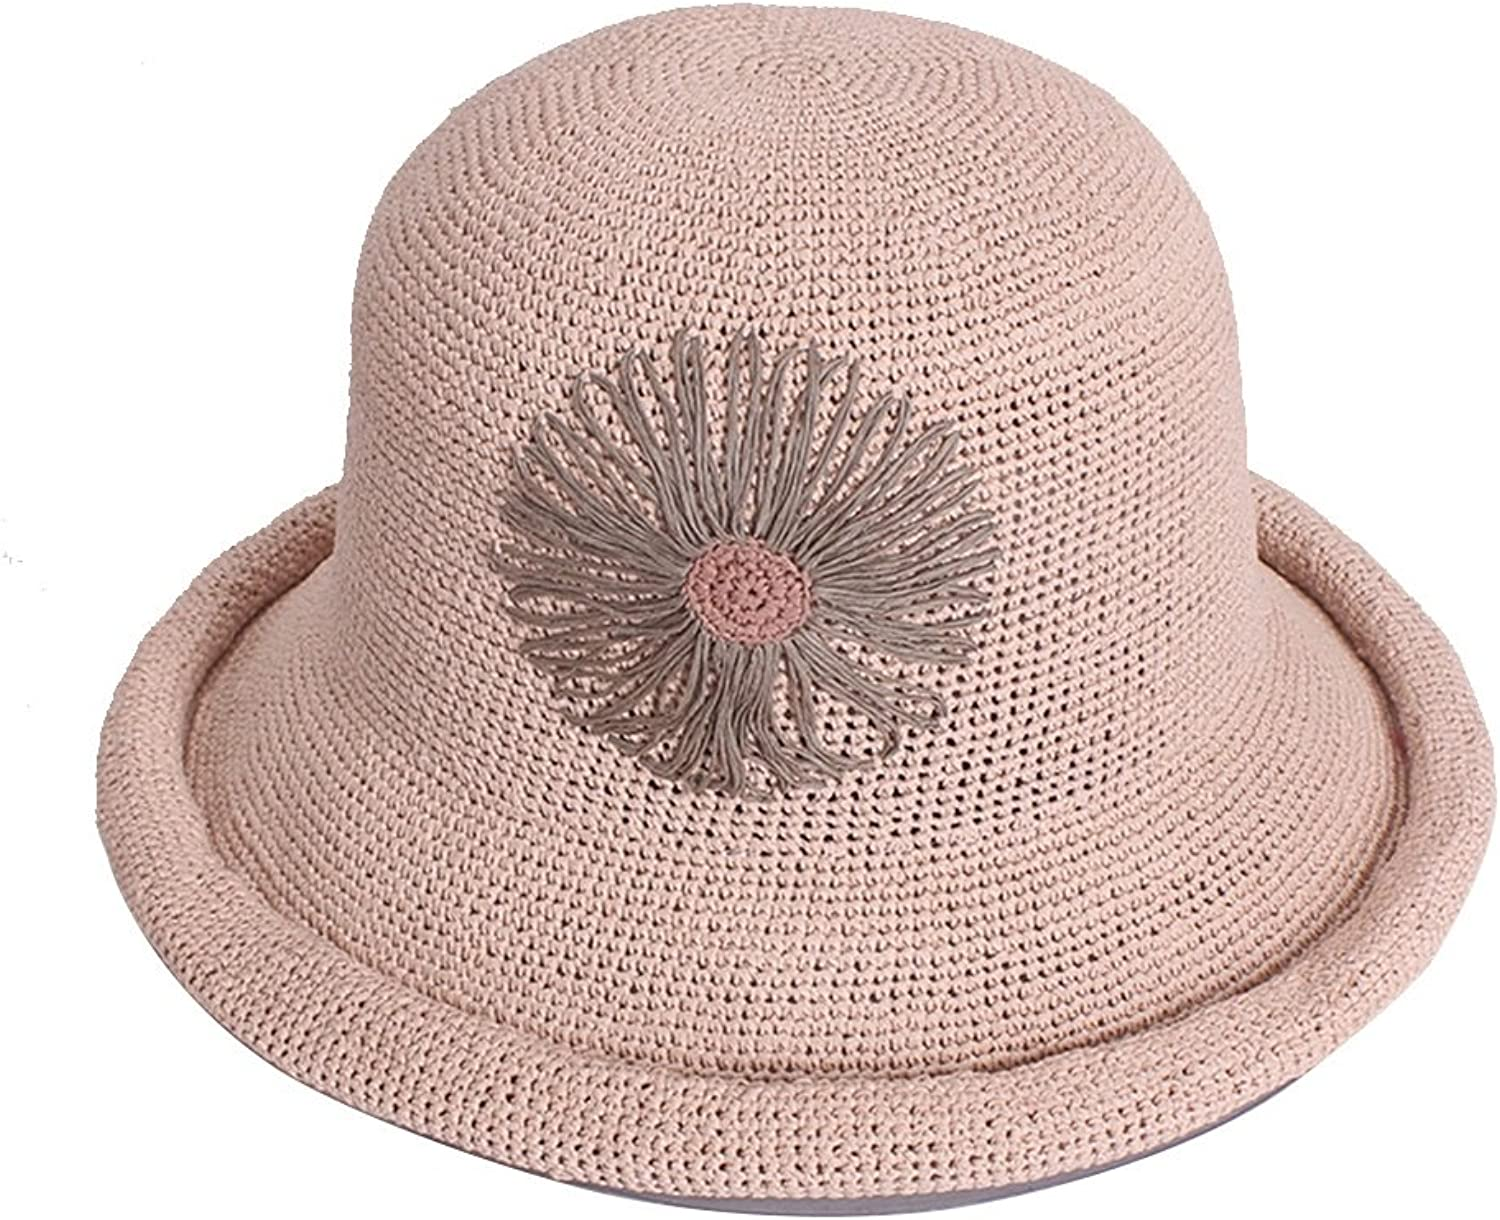 KTYX Women's Collapsible Fisherman Hat Curling Travel Sunhat Sunscreen Sun Hat Summer Hat (color   Pink, Size   57cm)